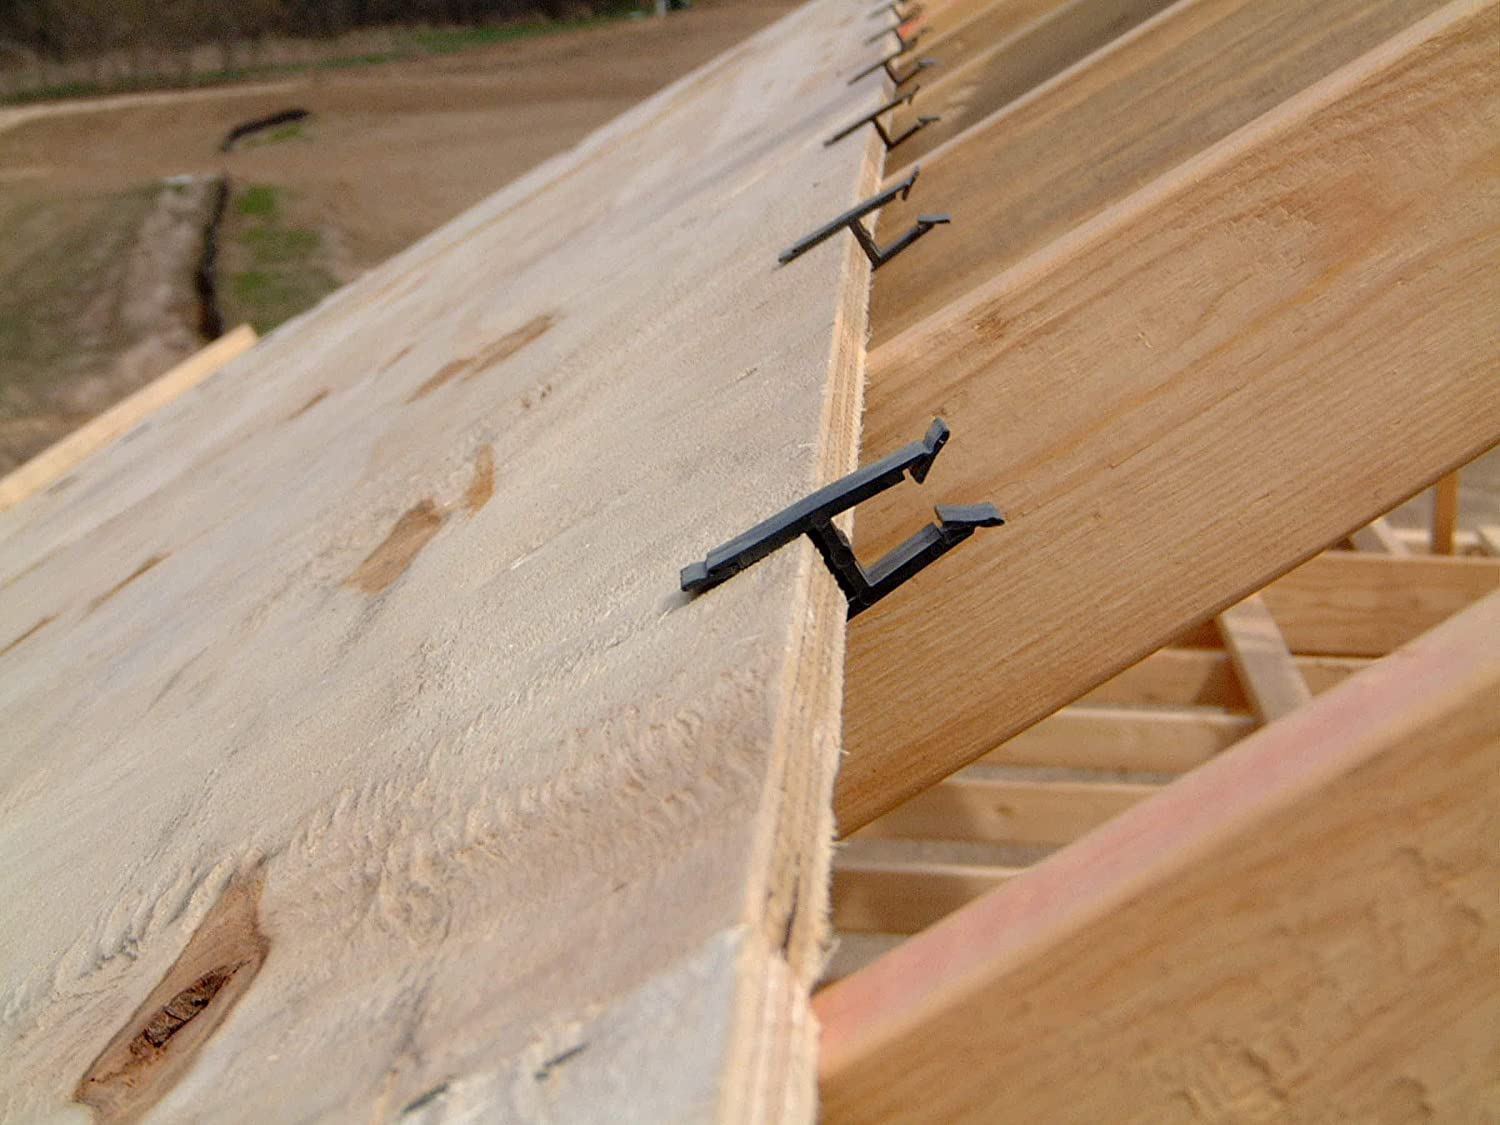 250 BAG M /& O Products 101384 GRIP H CLIP 19//32 5//8 Plywood H Clip Roof Sheathing for Faster Safer No Hassle Roofing